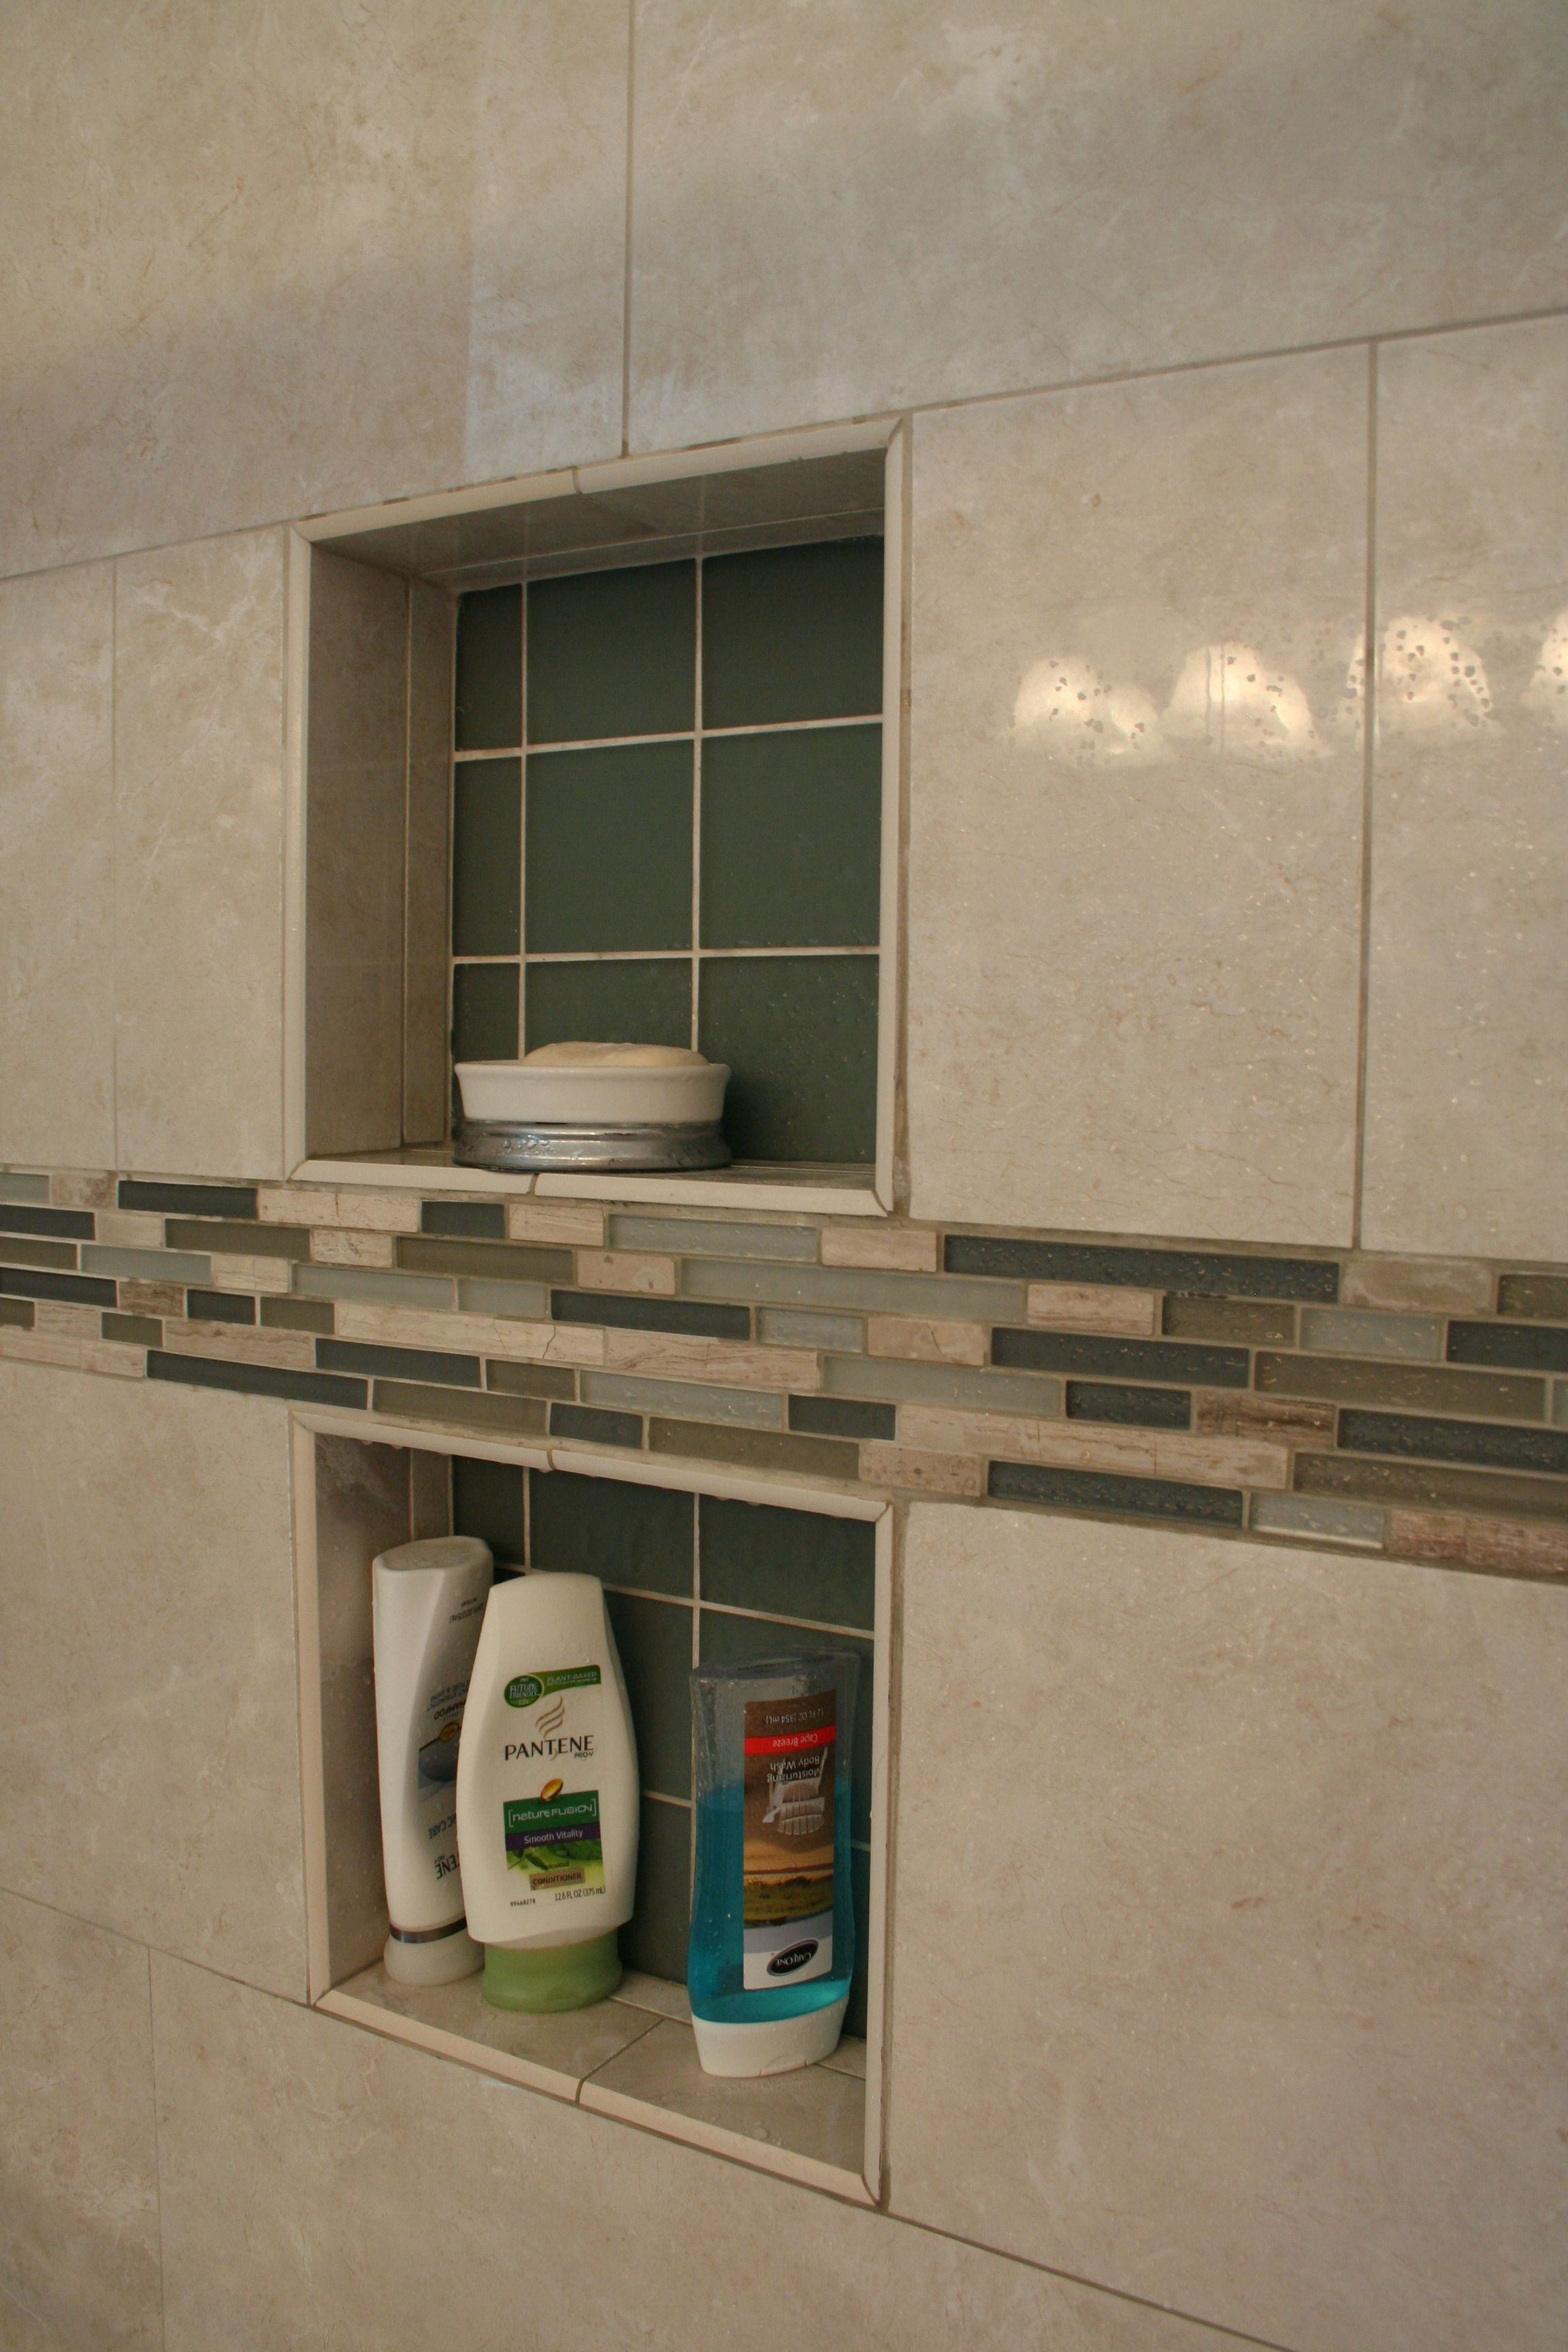 Florentine Porcelain Tile And Glass Mosaic Accent Strips Highlight This  Bathroom Remodel. The 2 Shower Niches Are Great Storage For All The Shampoo  Bottles ...